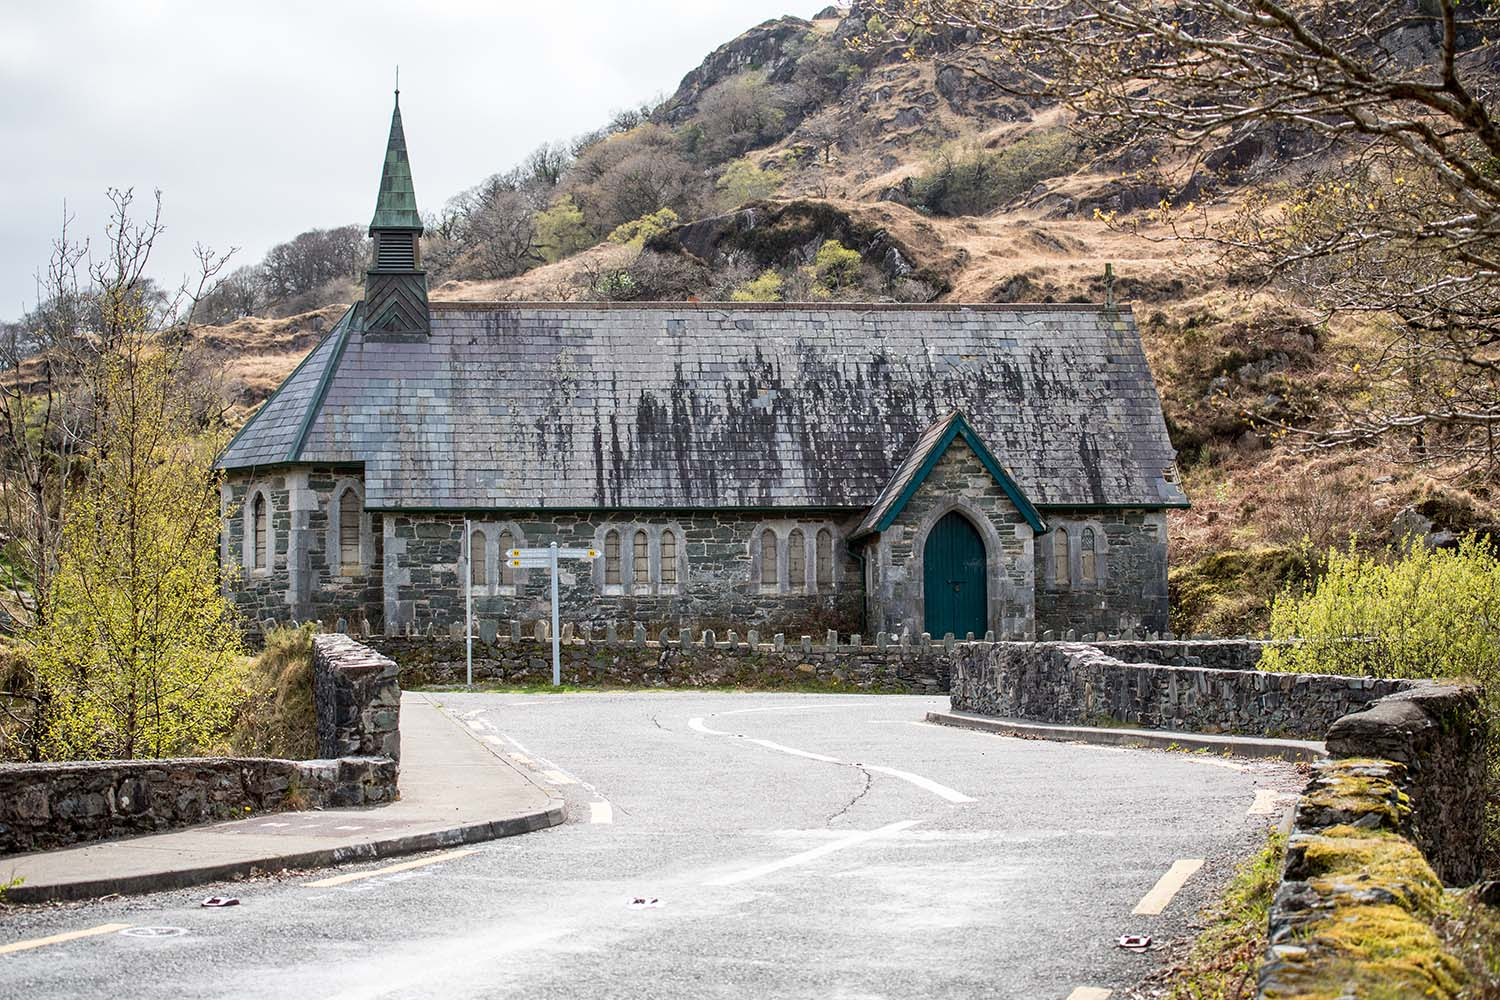 Abandoned Derrycunihy Church at Ladies View in Killarney National Park, Ireland